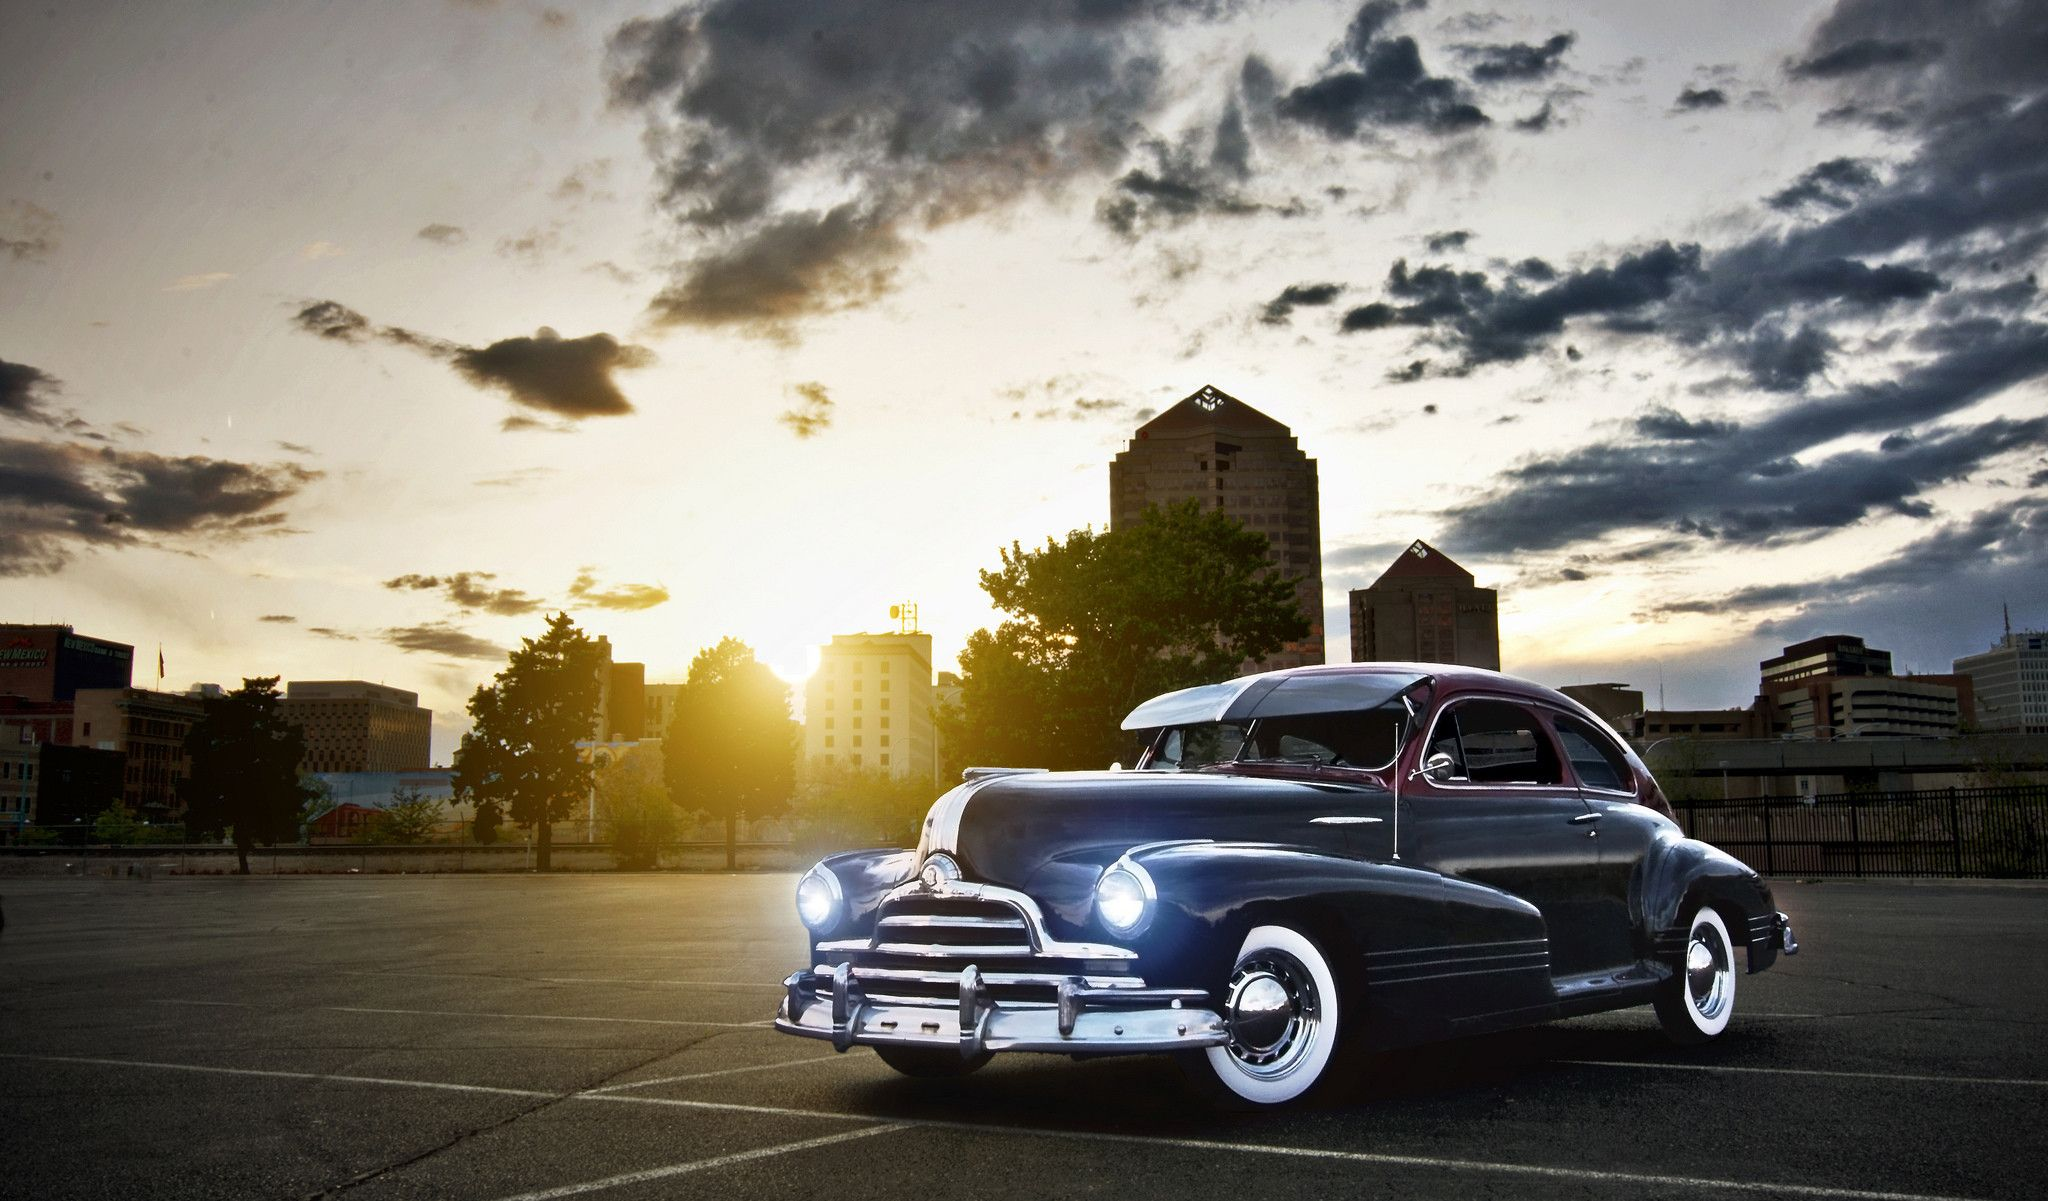 Classic Old Car Professional Photo In Sunlight Cars And Other Vehicles Wallpapers Hd Wallpaper Download For Ip Cool Old Cars Old Classic Cars New Car Photo